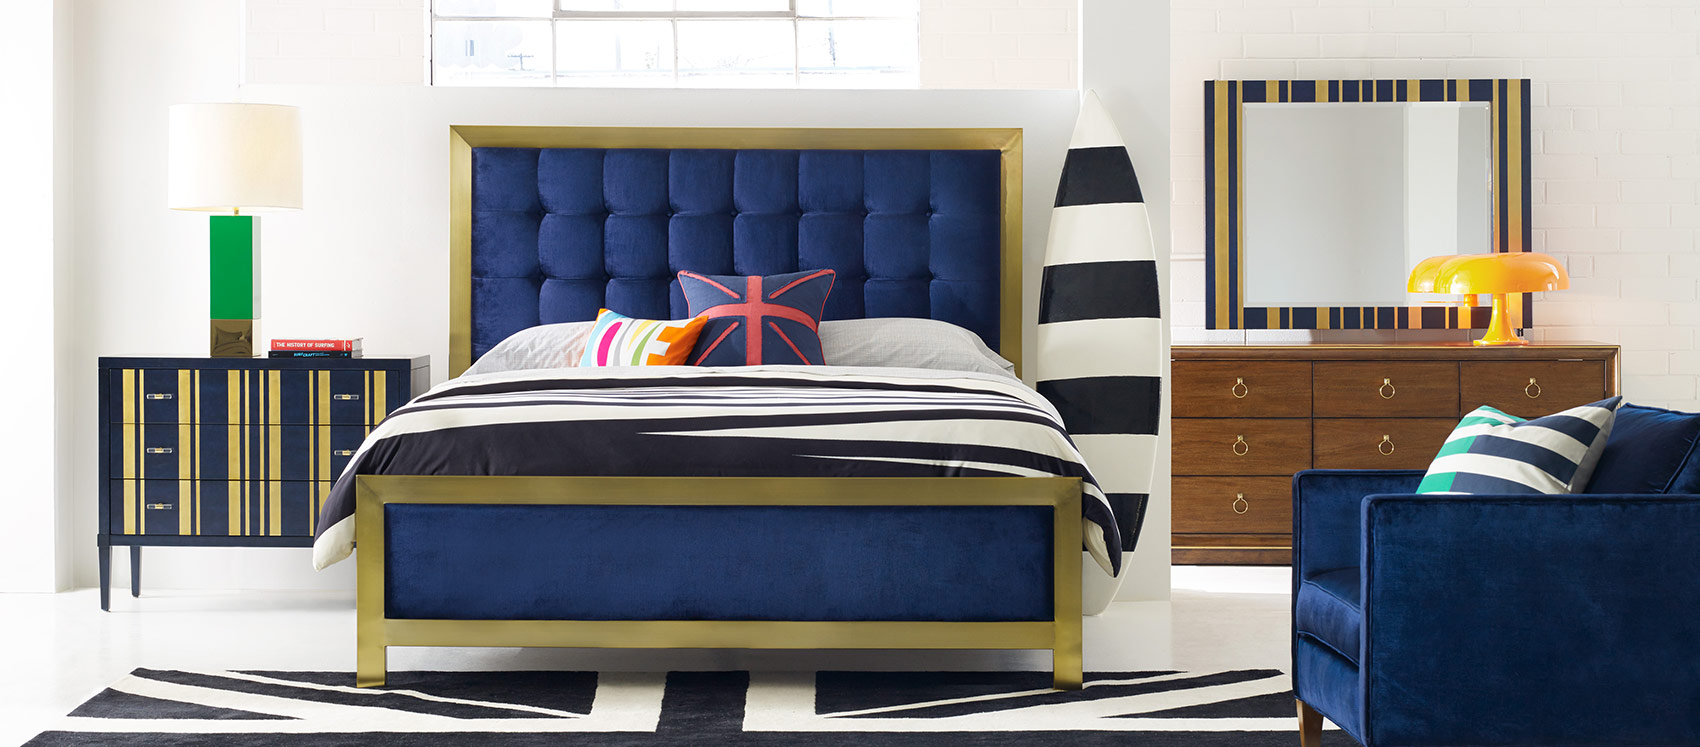 Astounding bedroom furniture sets from cynthia rowley home